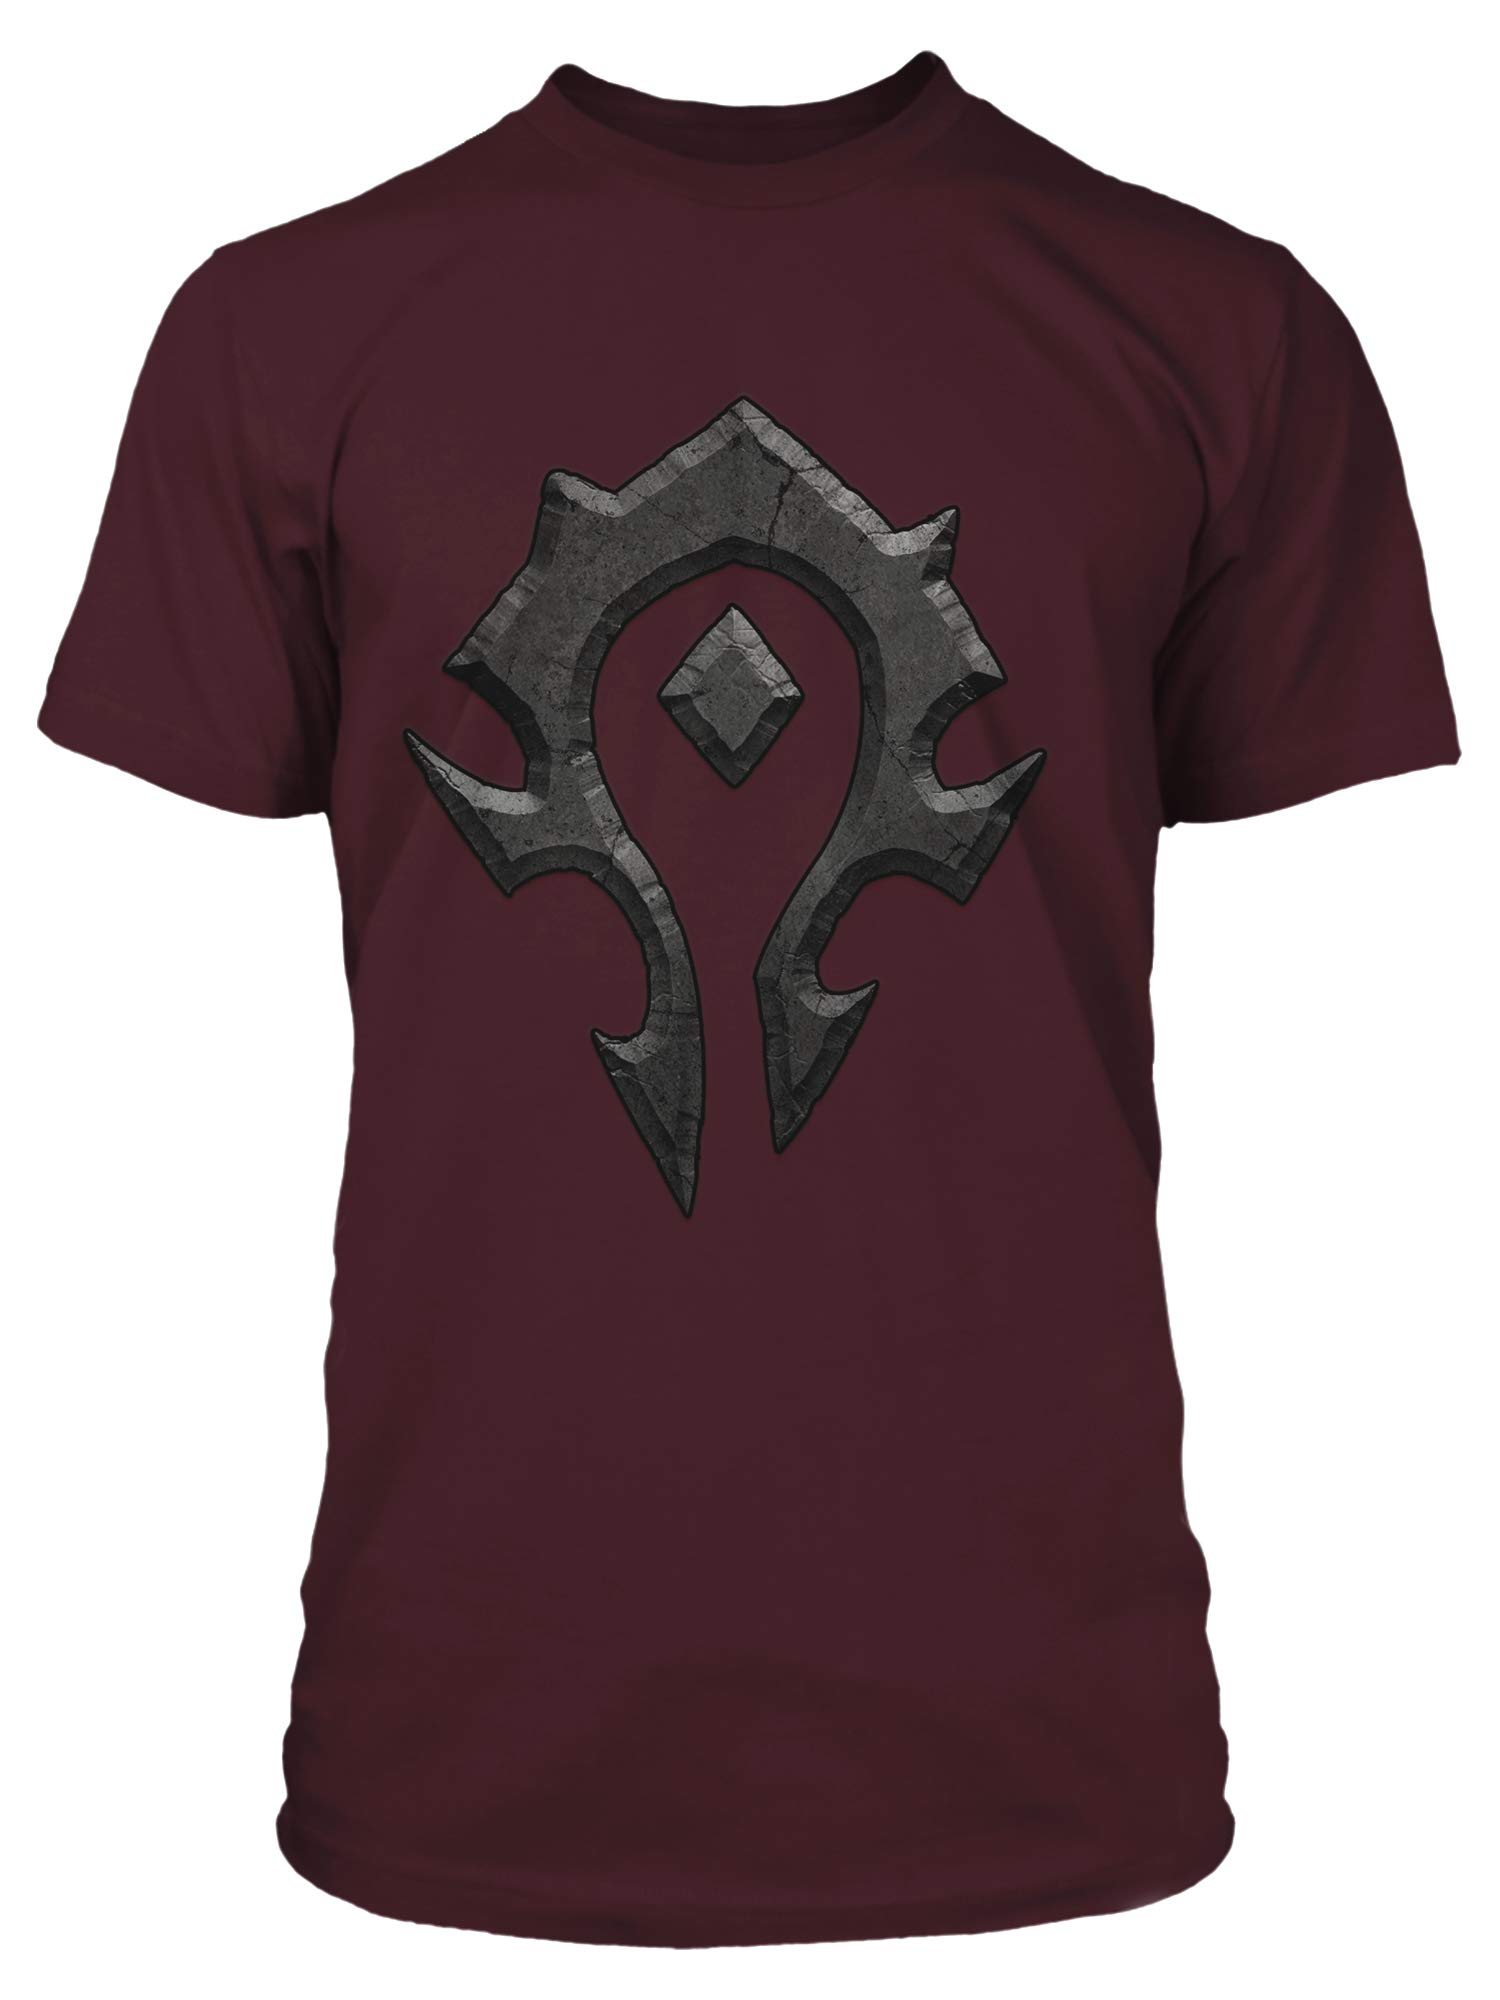 JINX World of Warcraft Horde Logo Men's Gamer Graphic T-Shirt